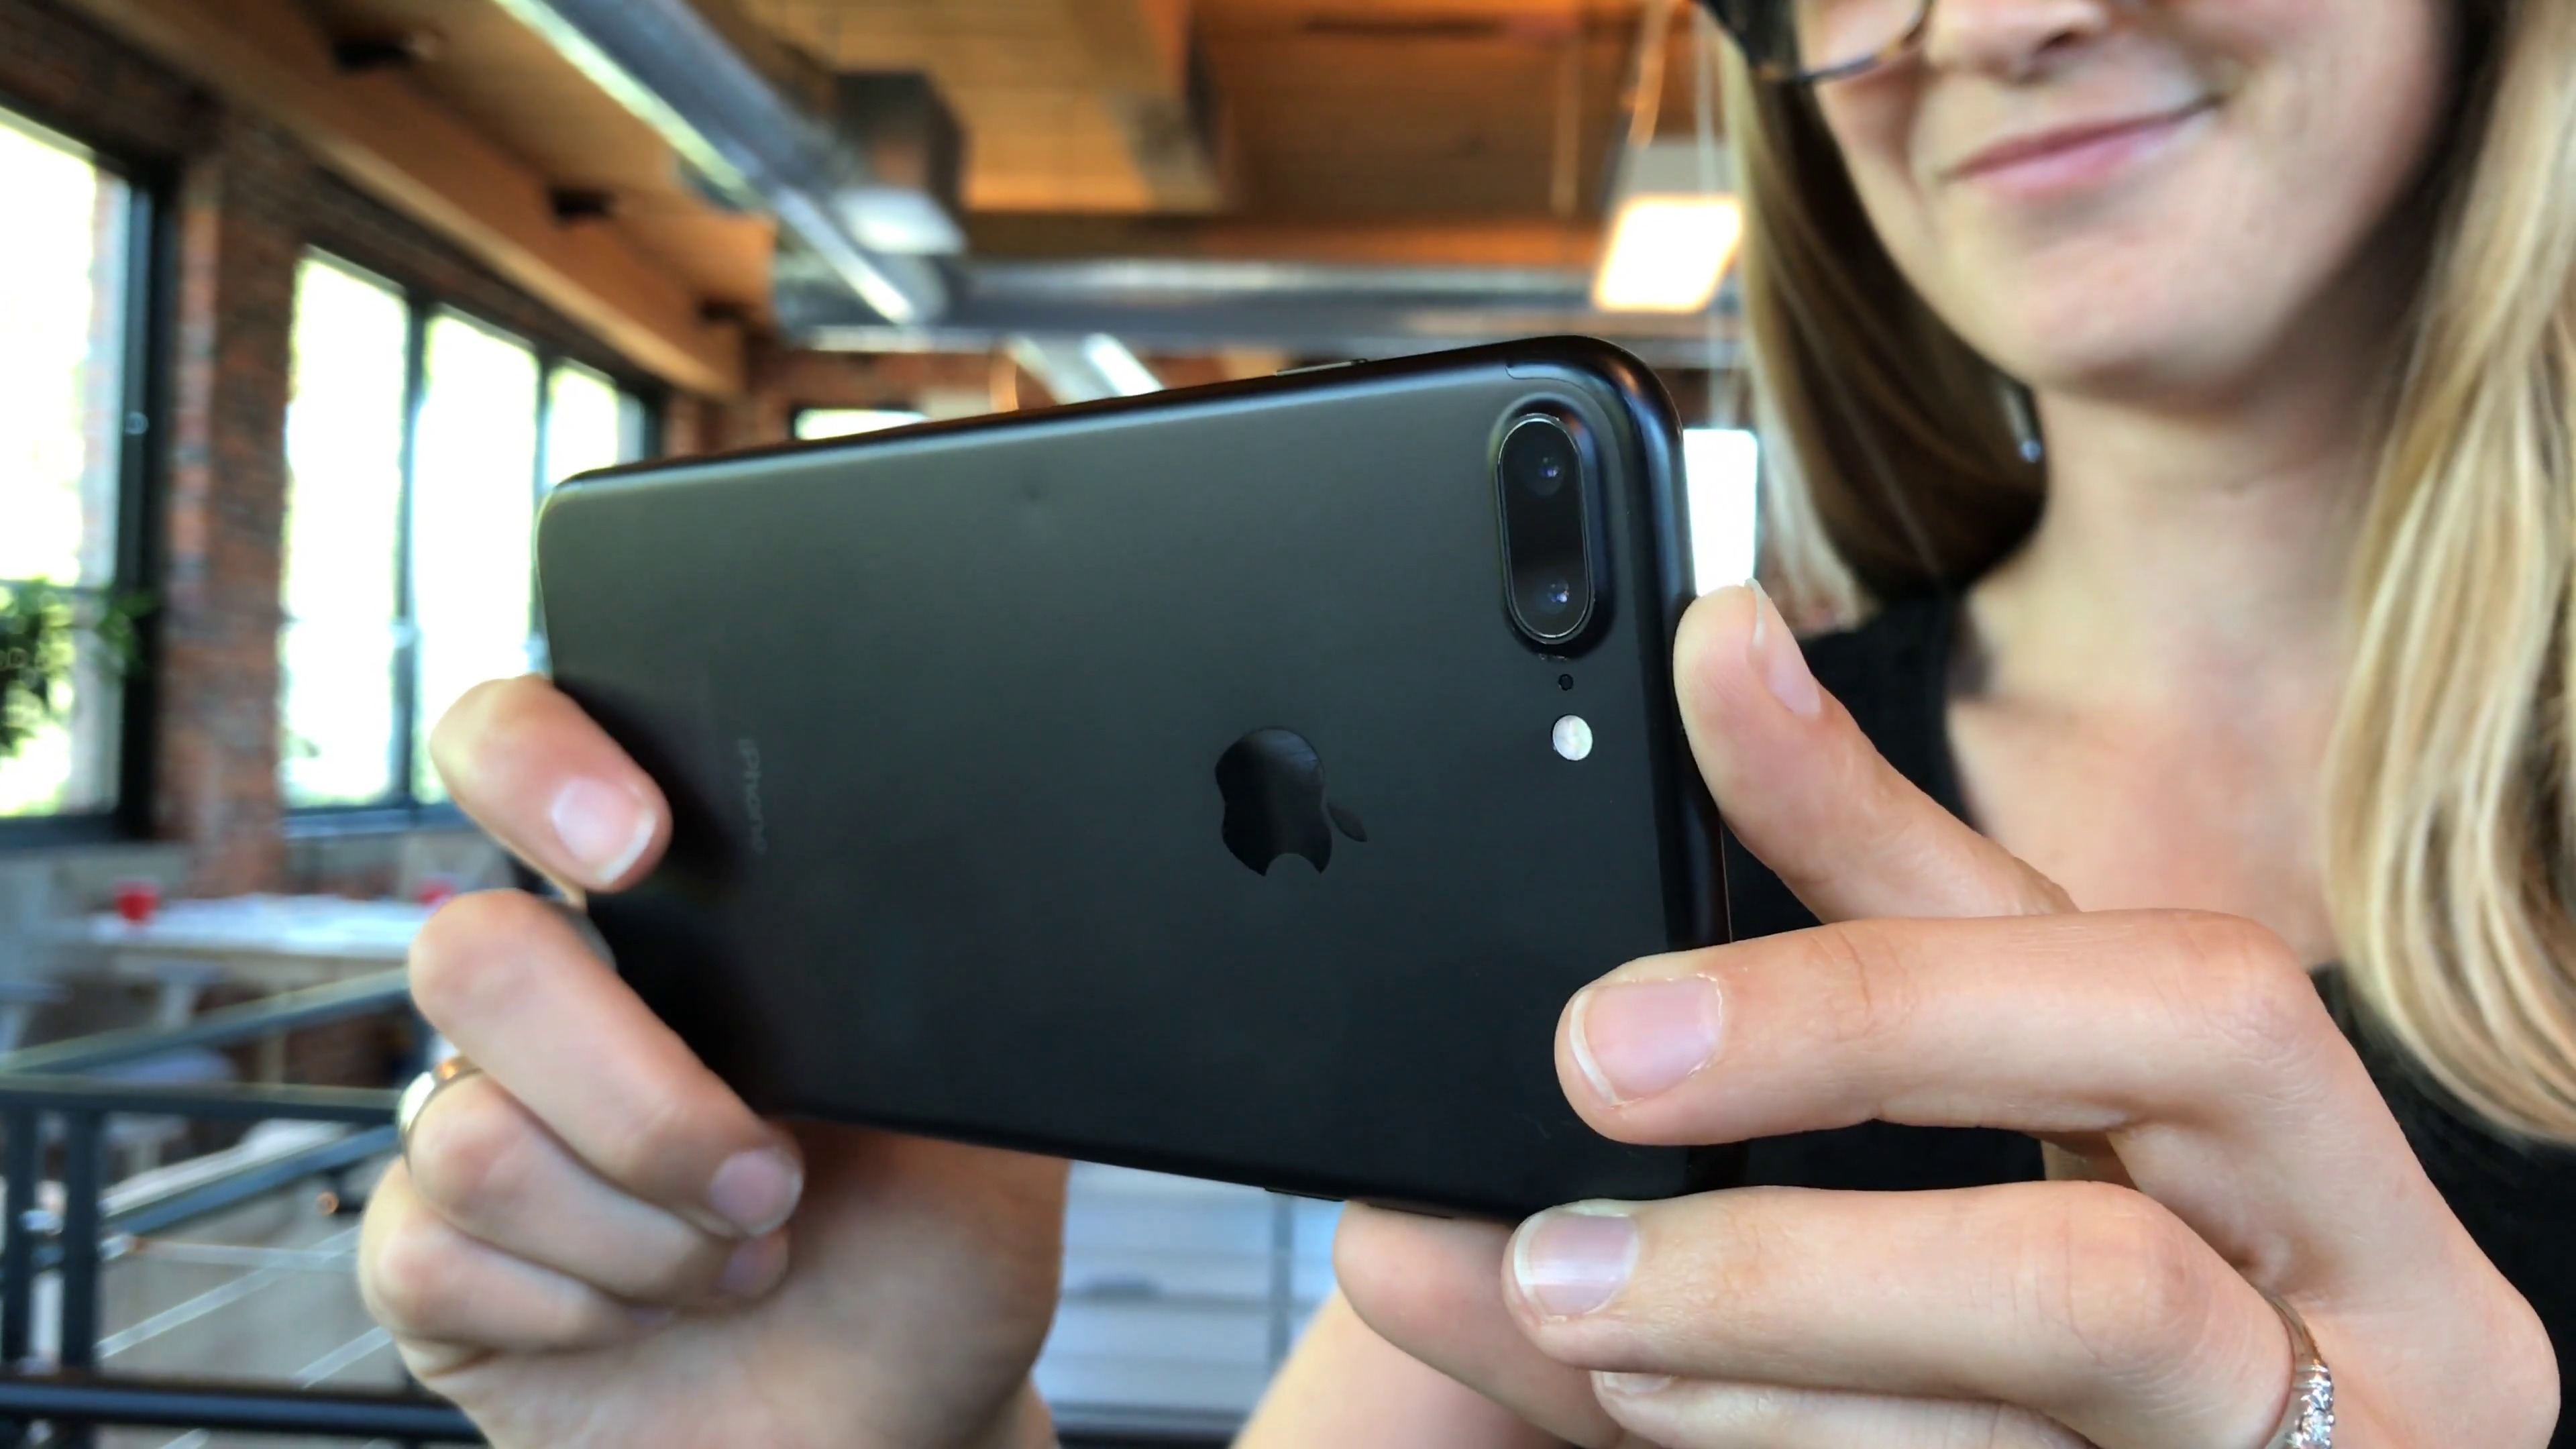 Shooting Video with an iPhone - A